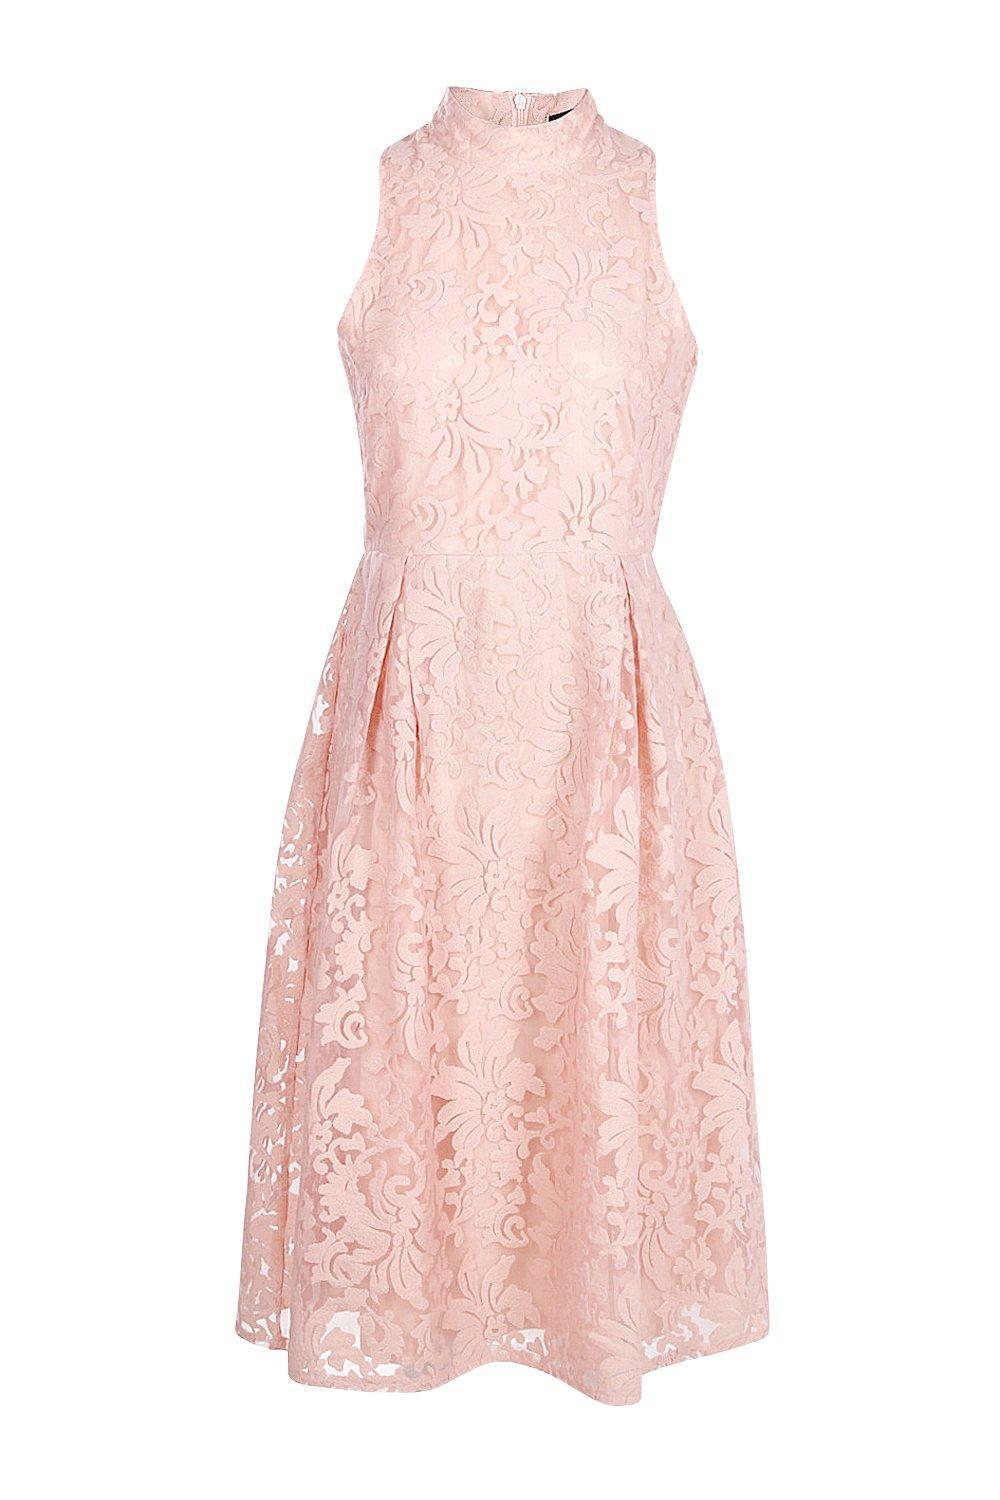 78efa0c2d8 Lyst - Boohoo Elle Embroidered High Neck Midi Skater Dress in Pink